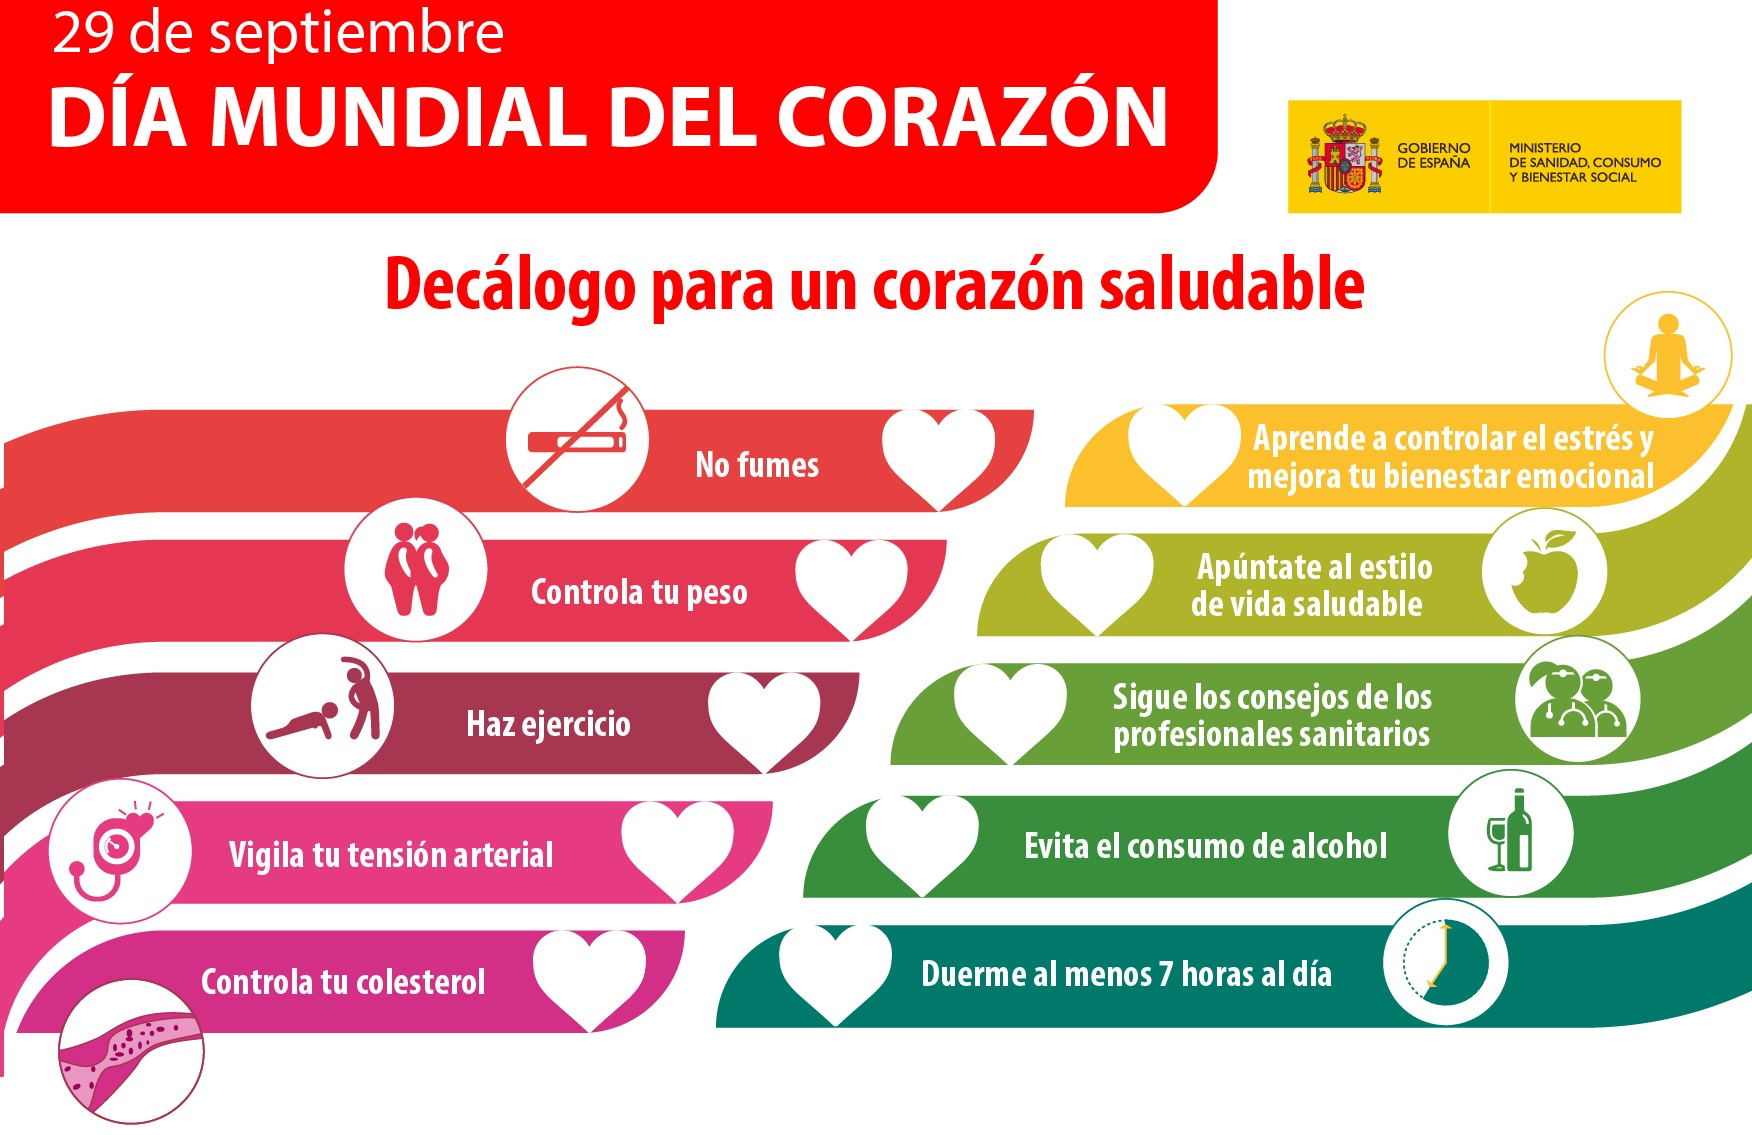 DIAMUNDIALCORAZON.jpg